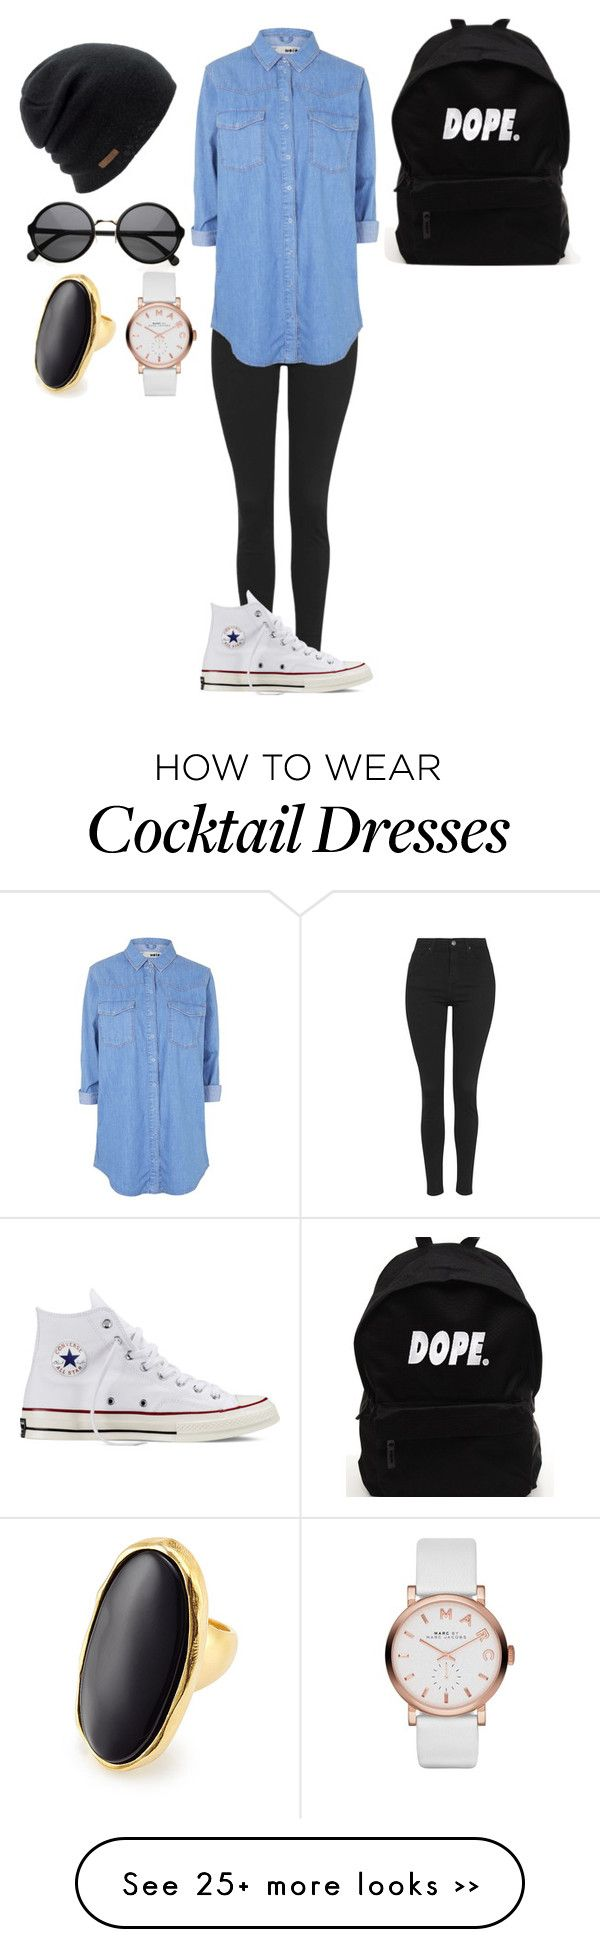 """Untitled #91"" by samanta-gudonyte on Polyvore featuring Topshop, Converse, Coal, Marc by Marc Jacobs and Kenneth Jay Lane"